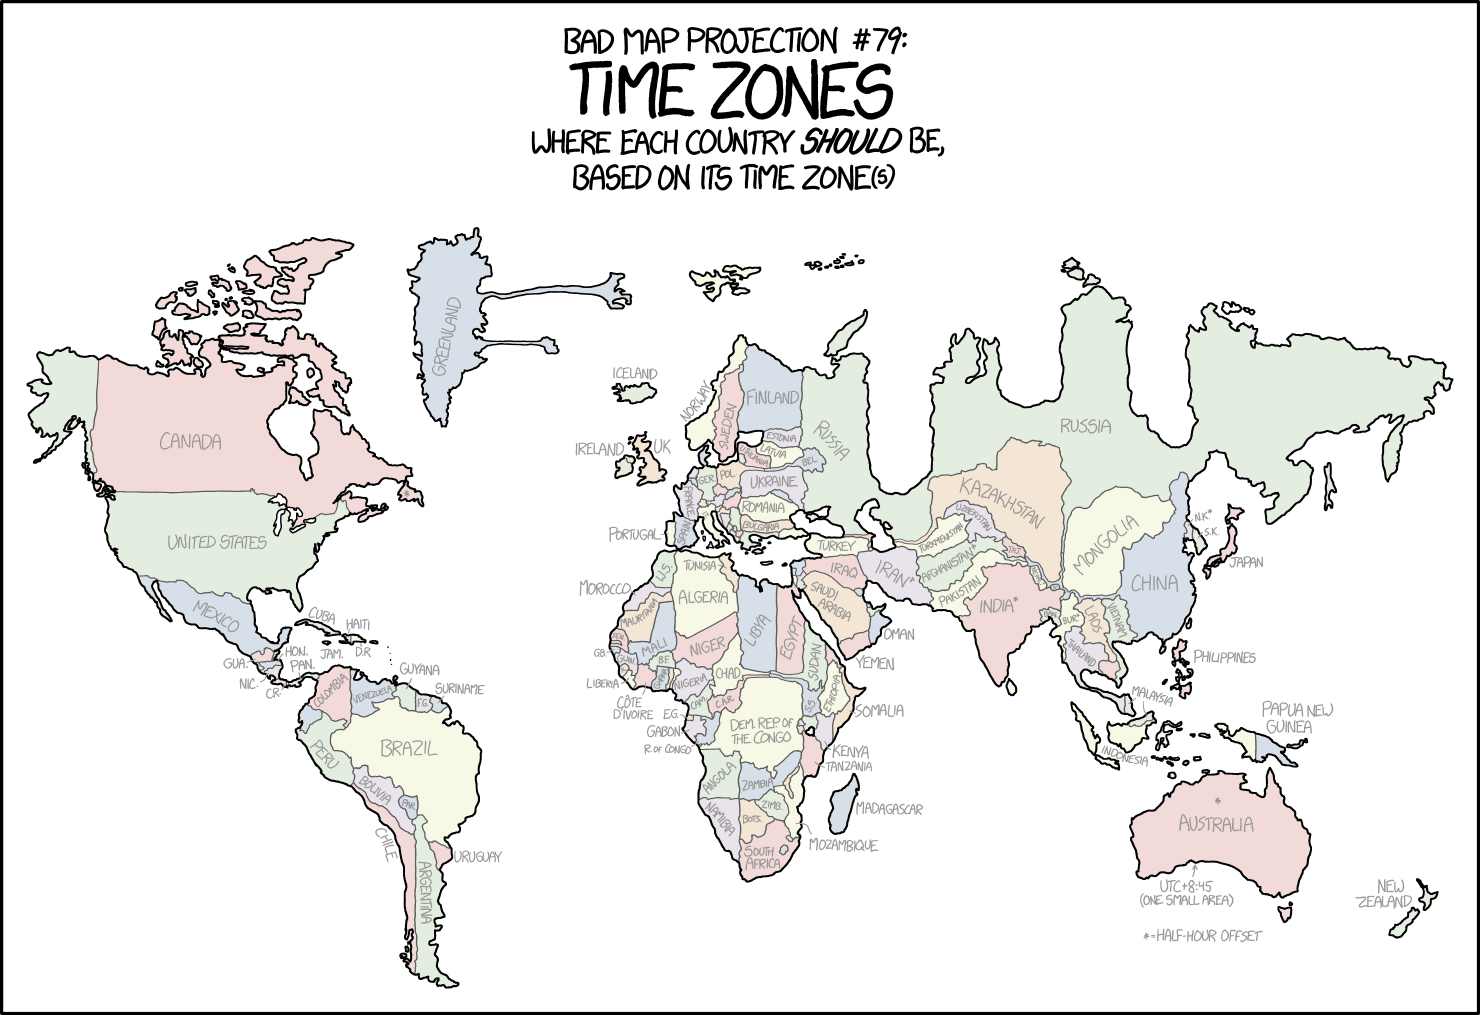 Distorted Map Shows Each Country Forced Into Its Time Zone